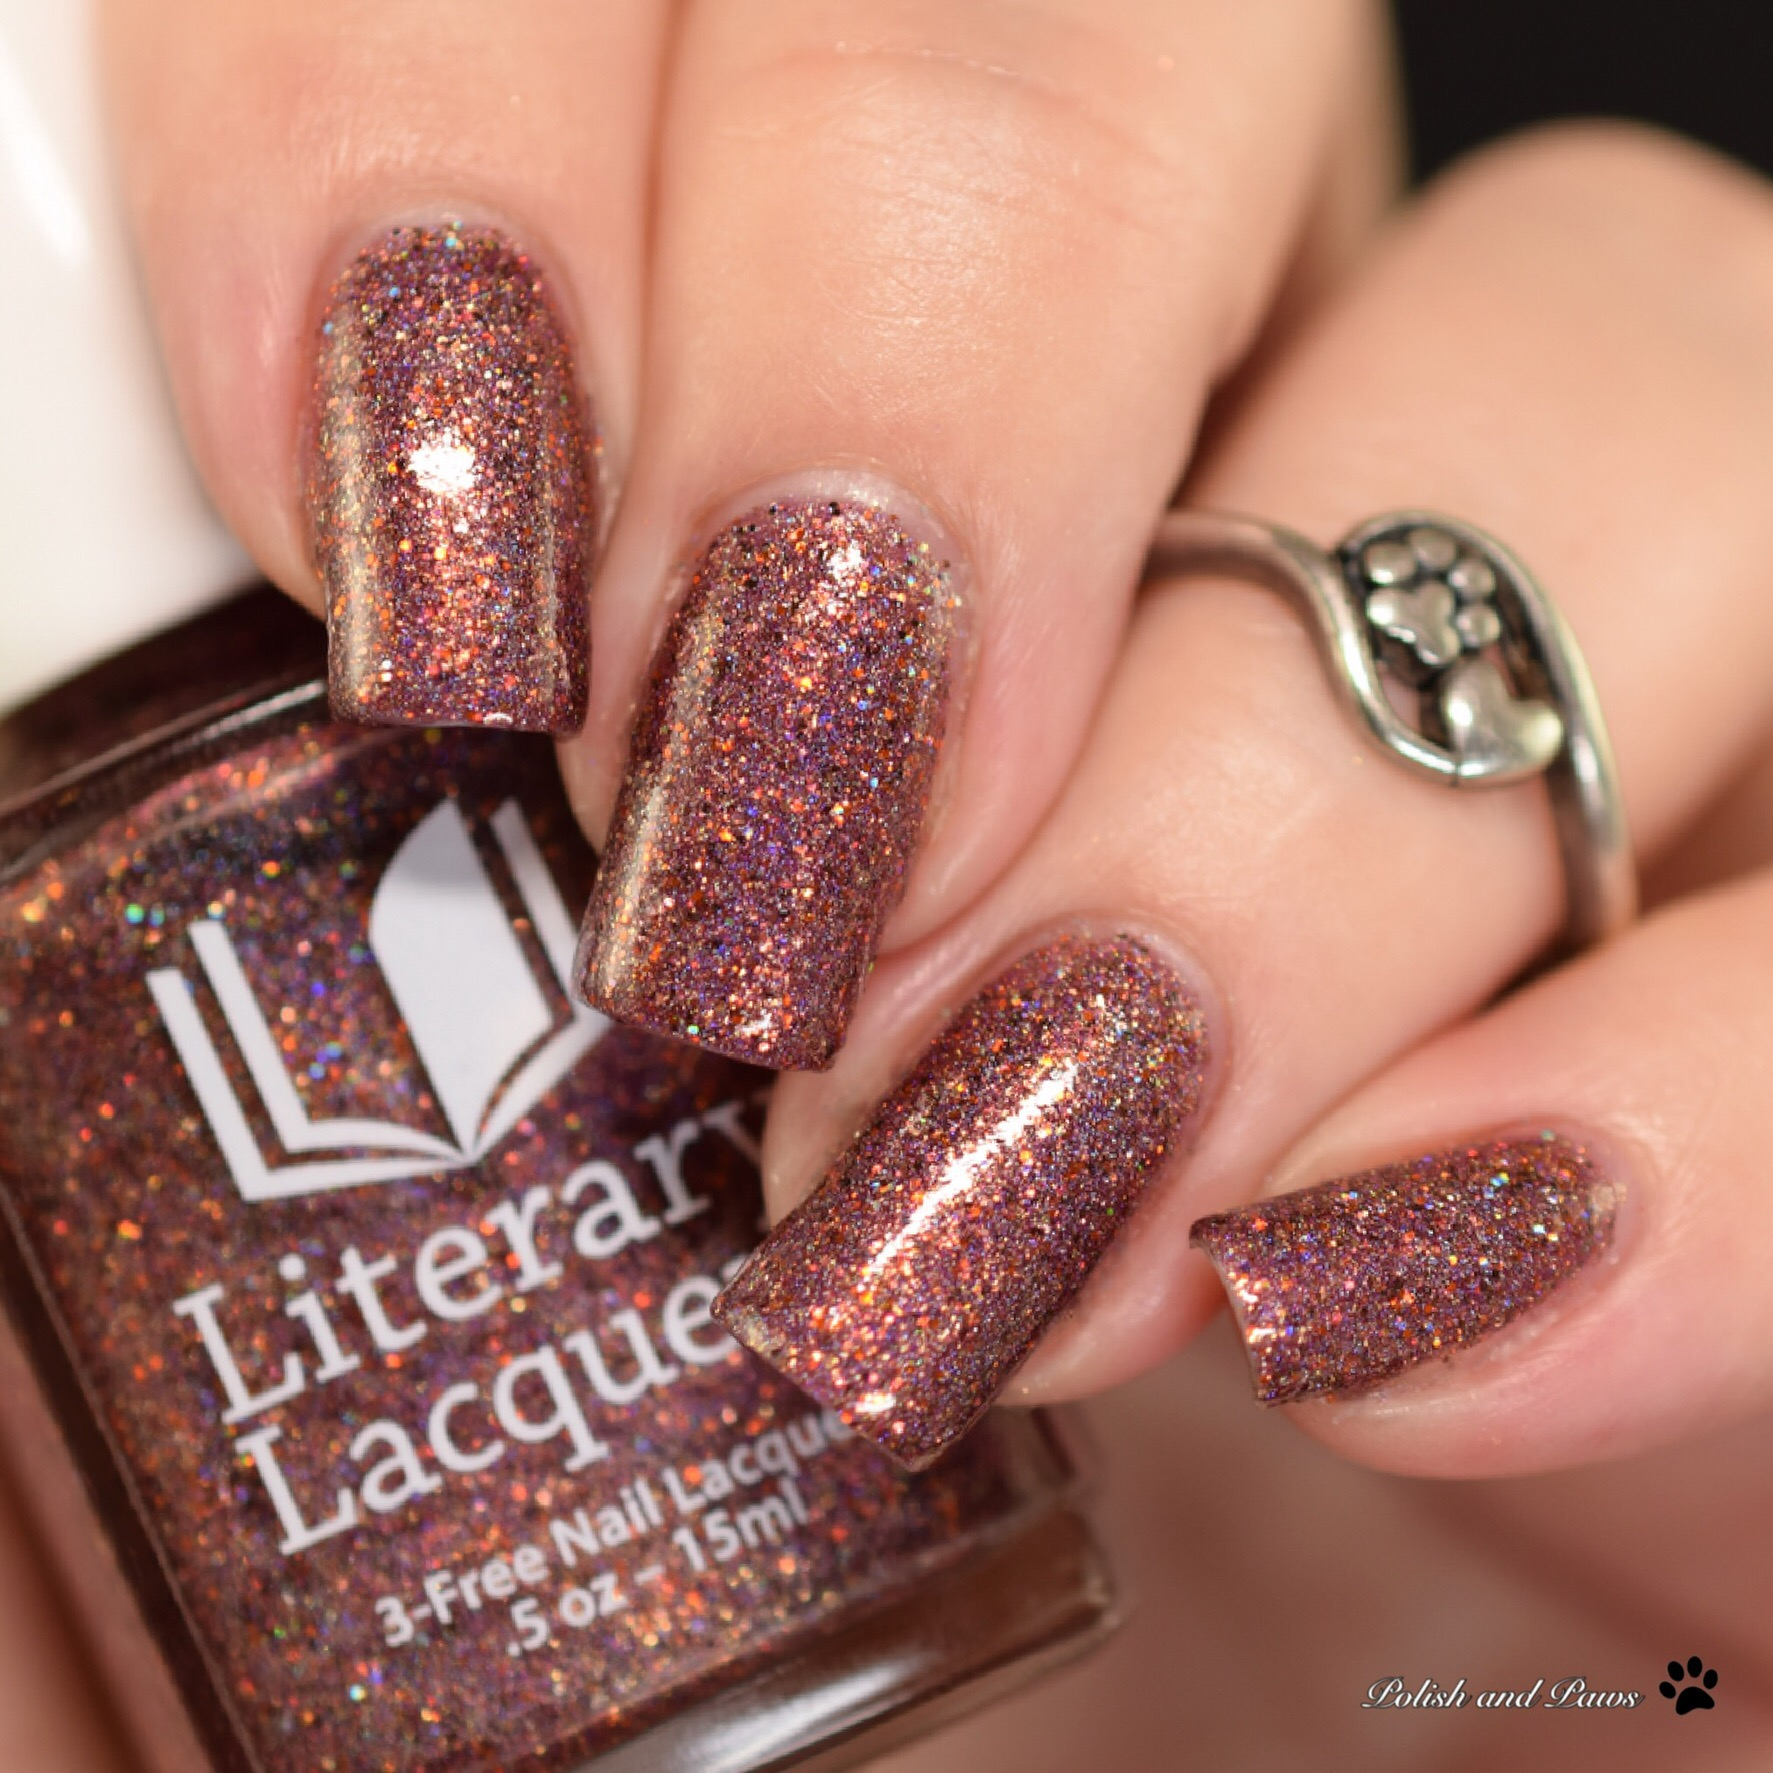 Literary Lacquers Autumn Fire